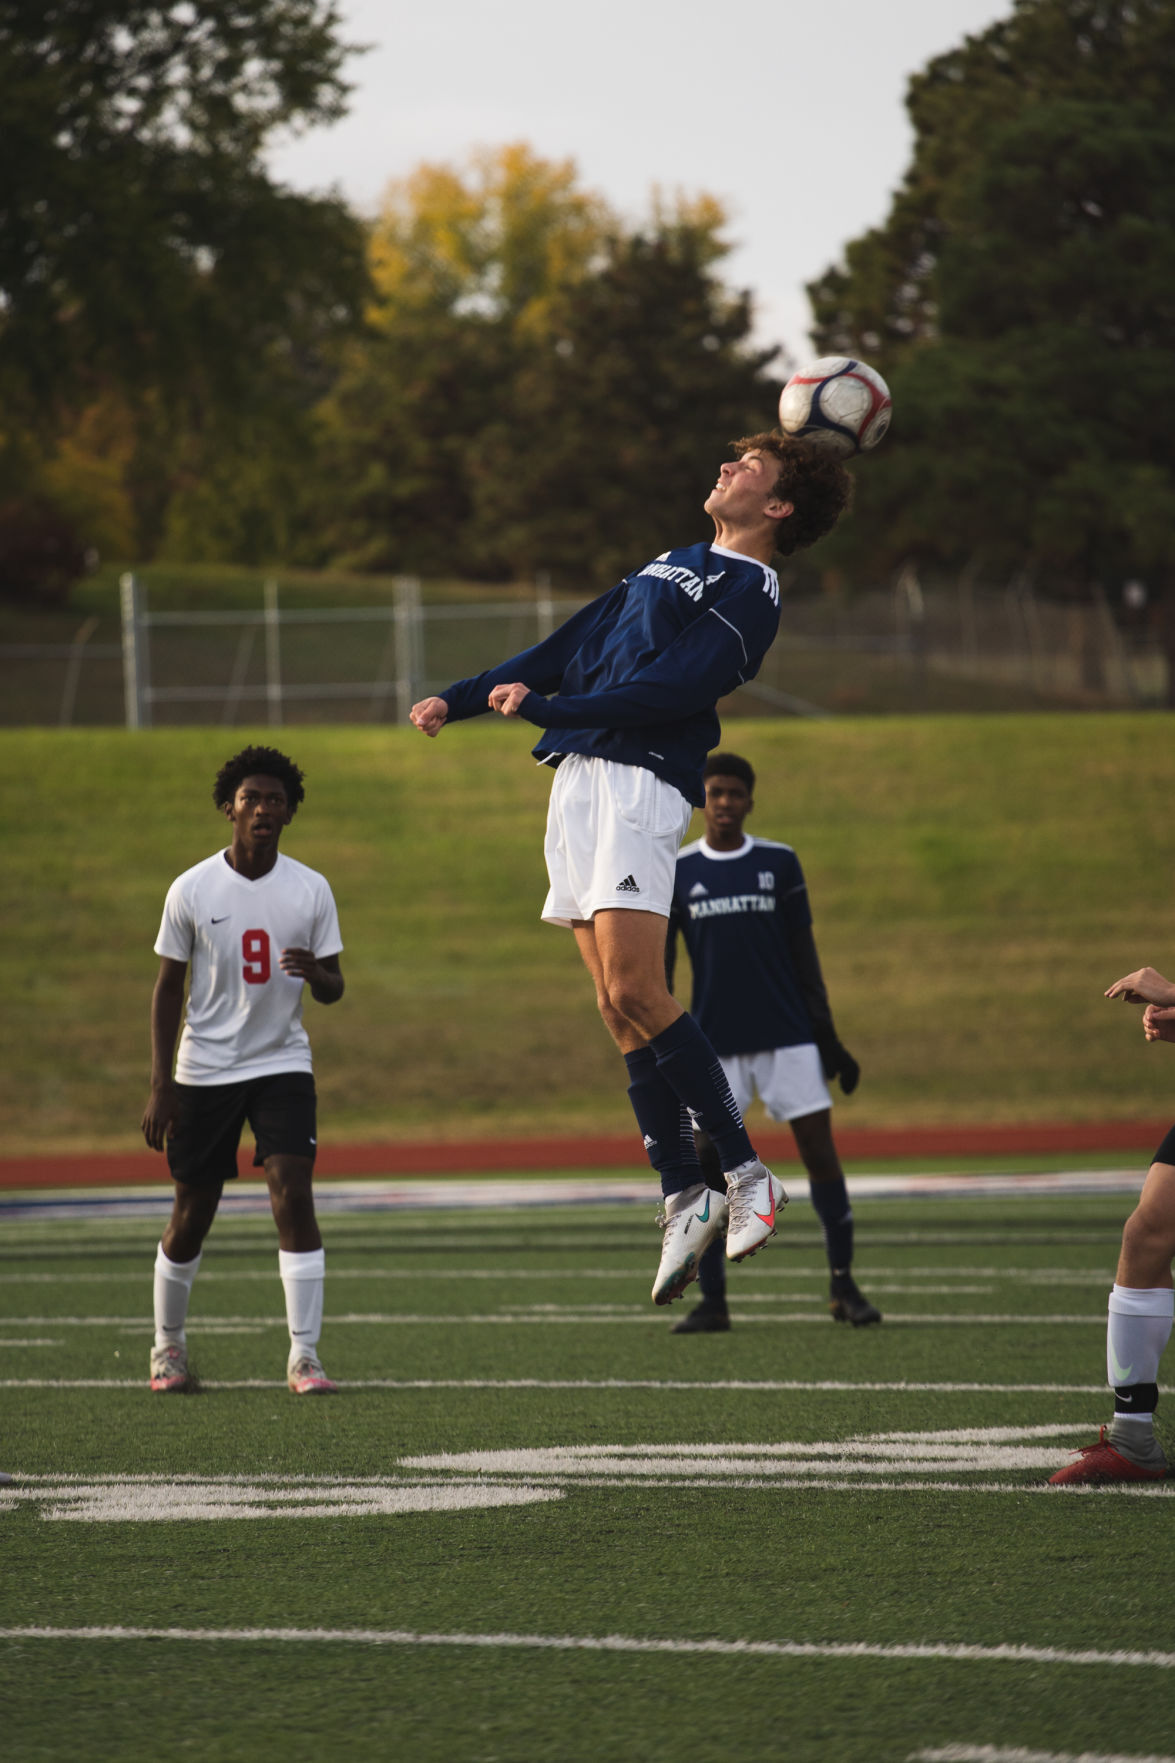 october22_20_sports_mer_mhsboyssoccer_shawnee-15.jpg